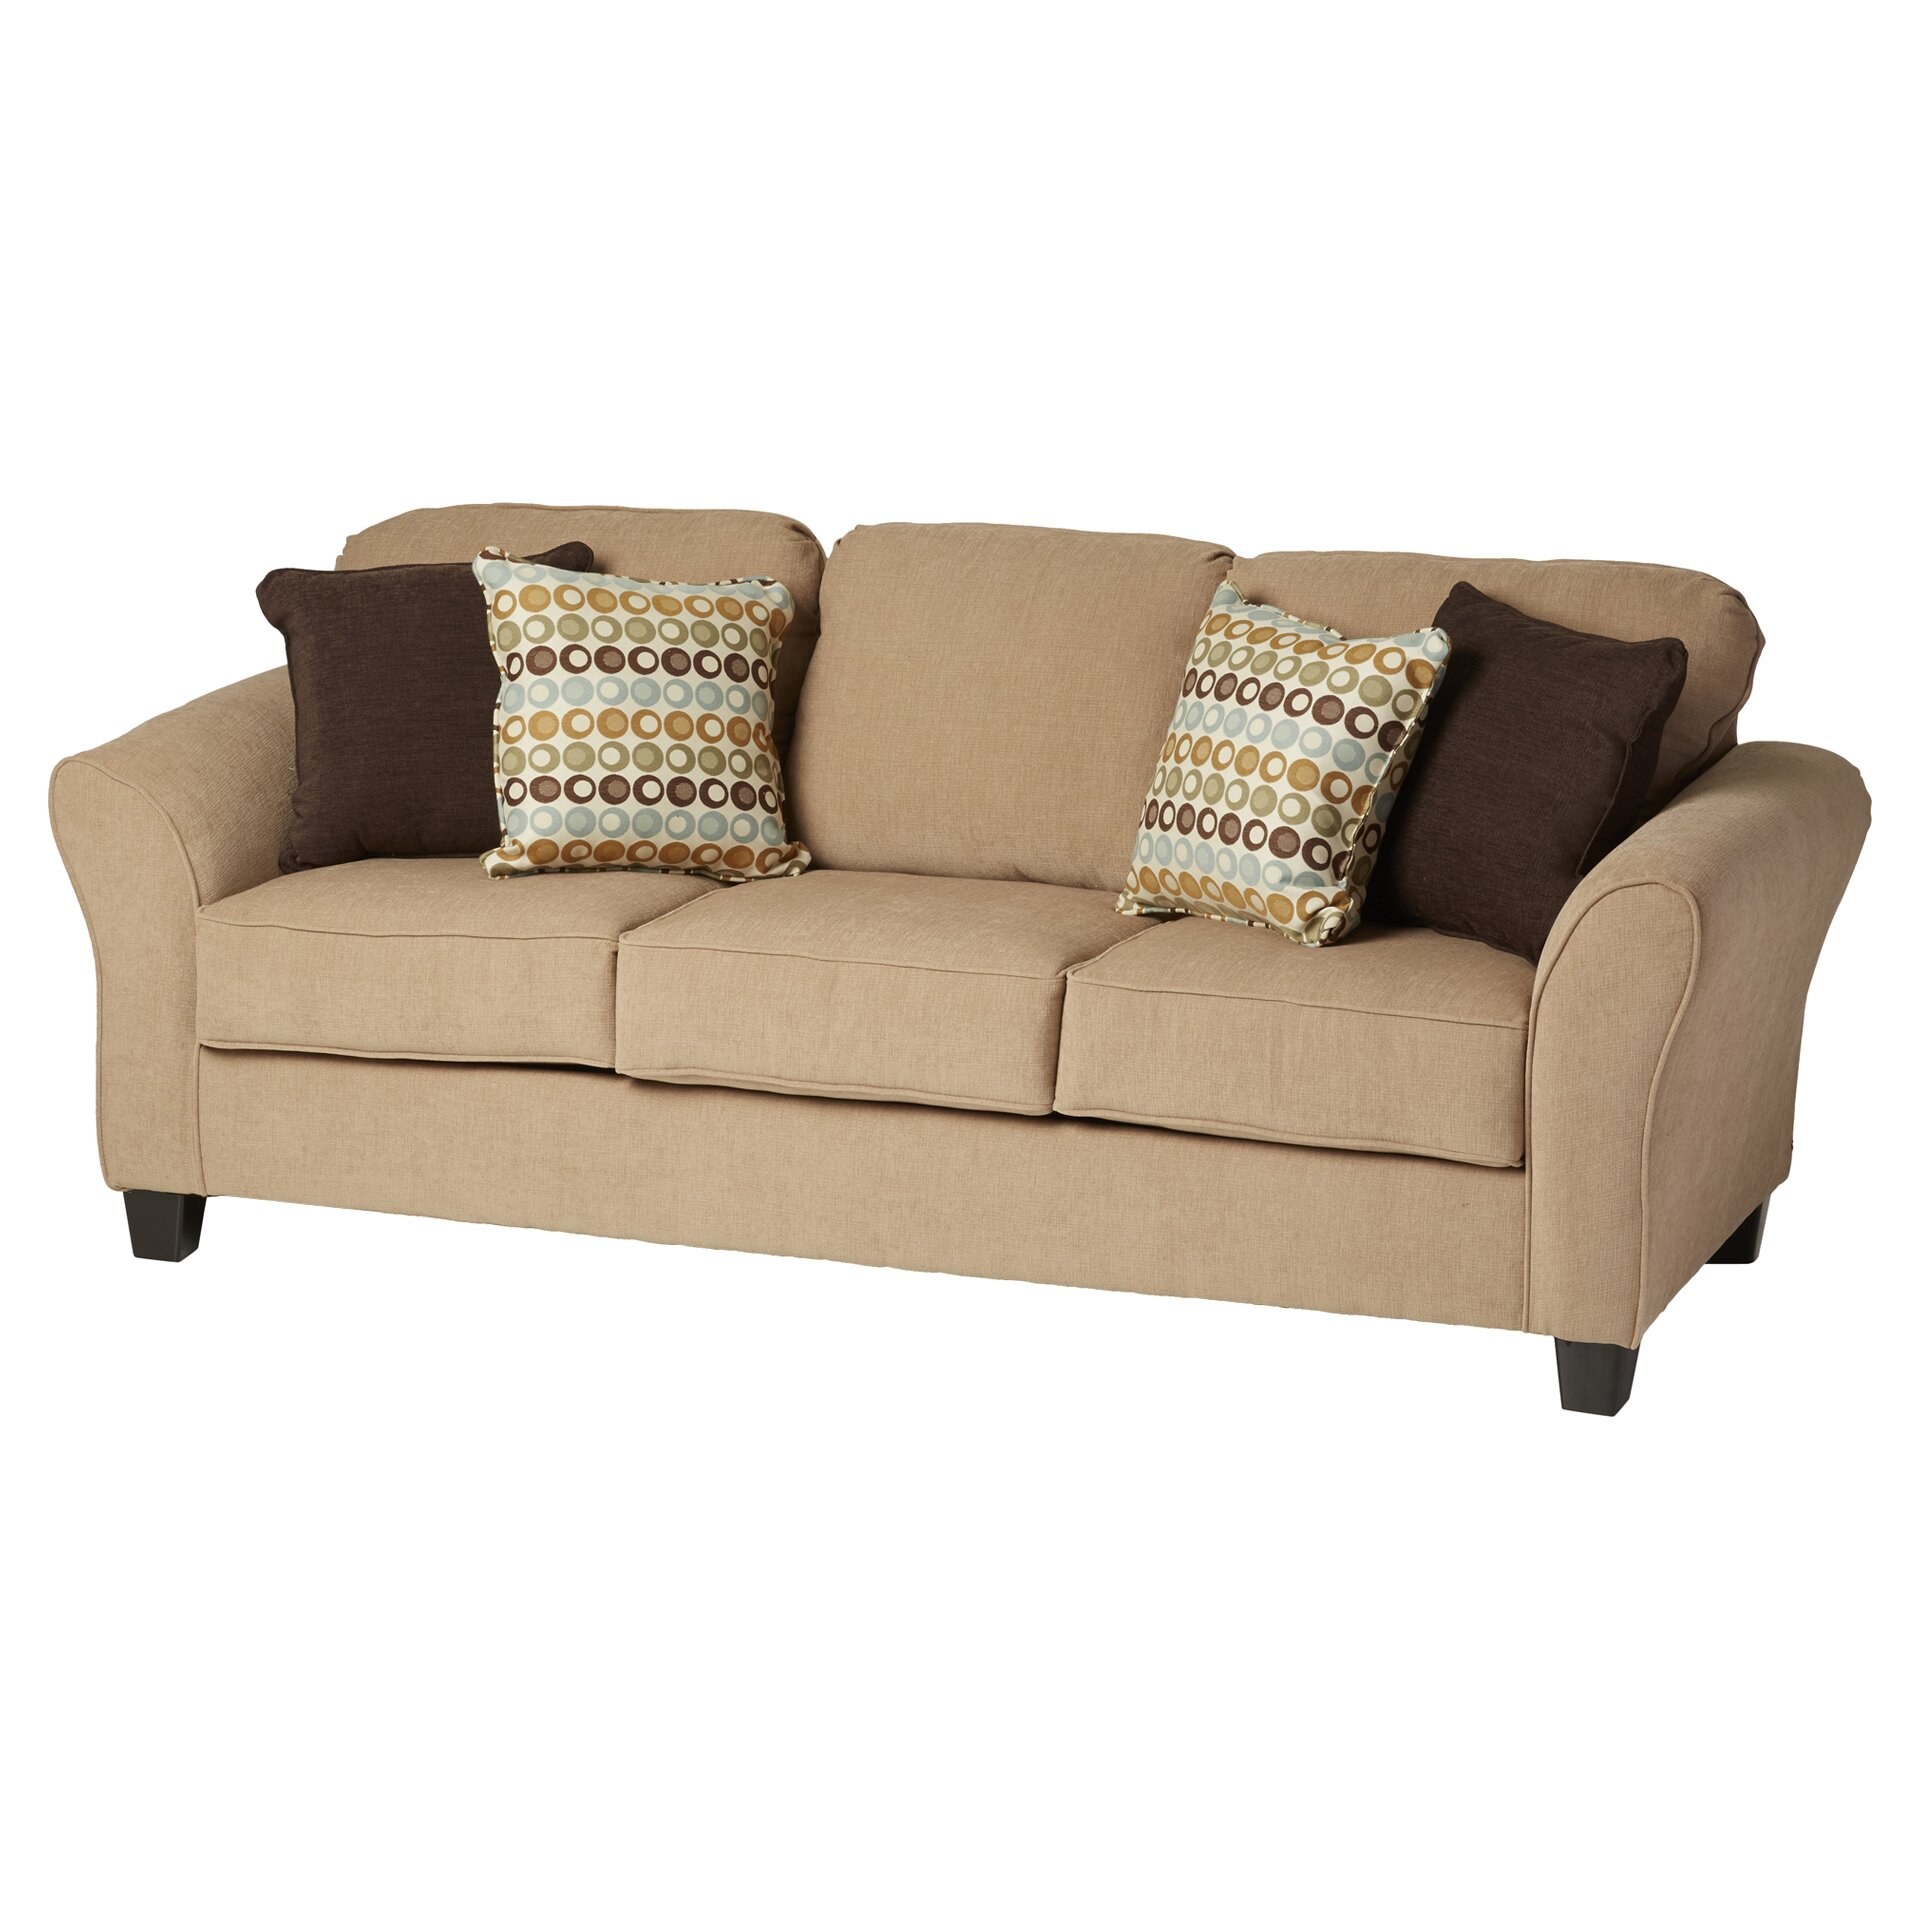 Three Posts Serta Upholstery Franklin Sofa Reviews Wayfair